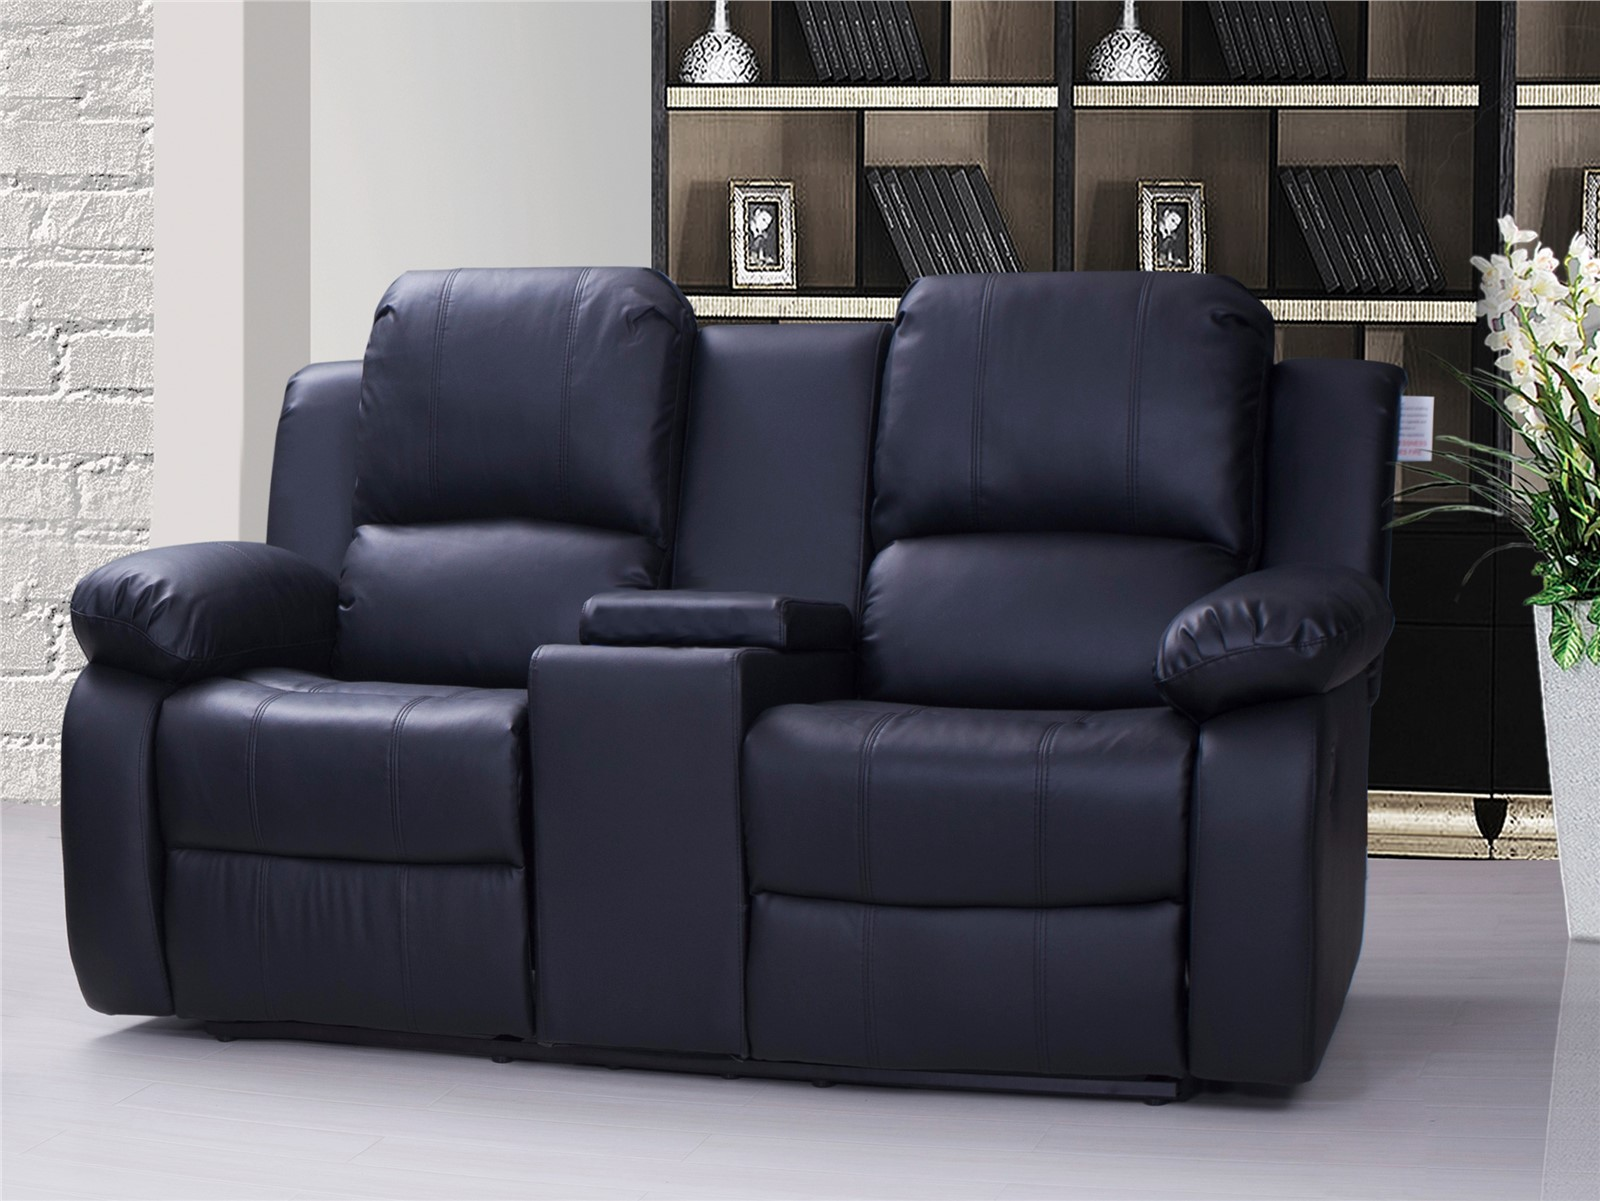 White Couch And Love Seat